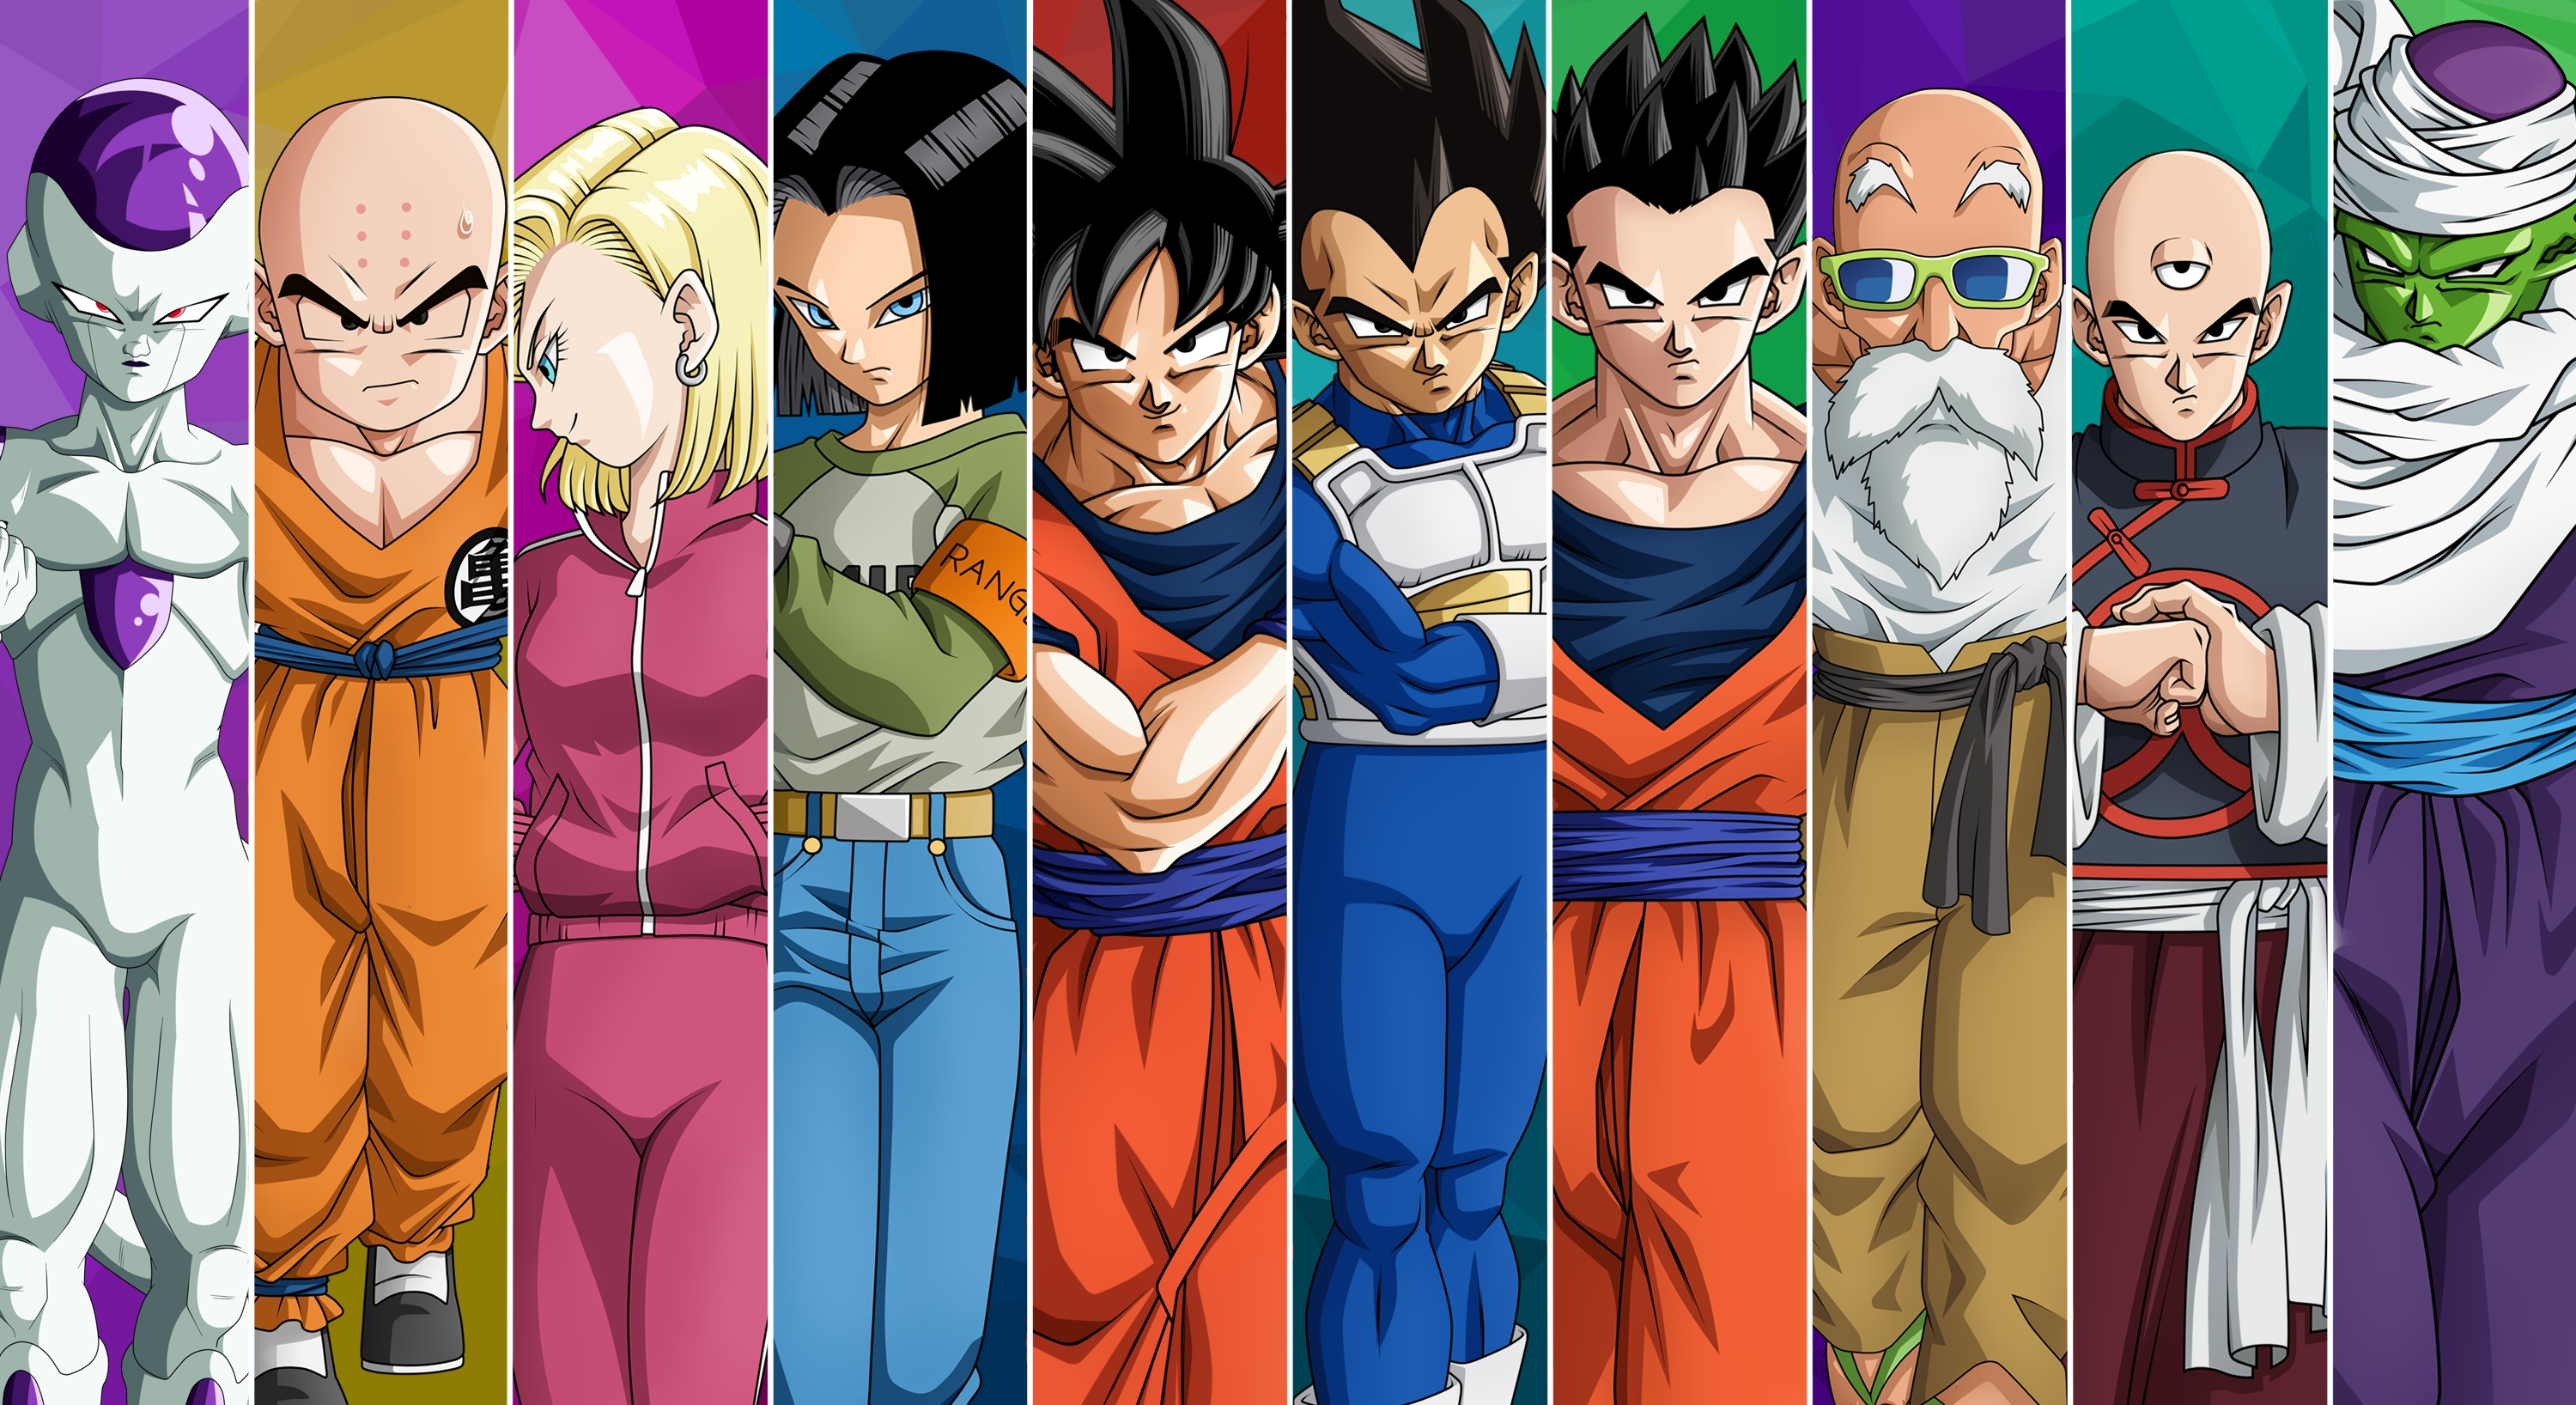 dragon ball super full hd wallpaper and background image | 3000x1636